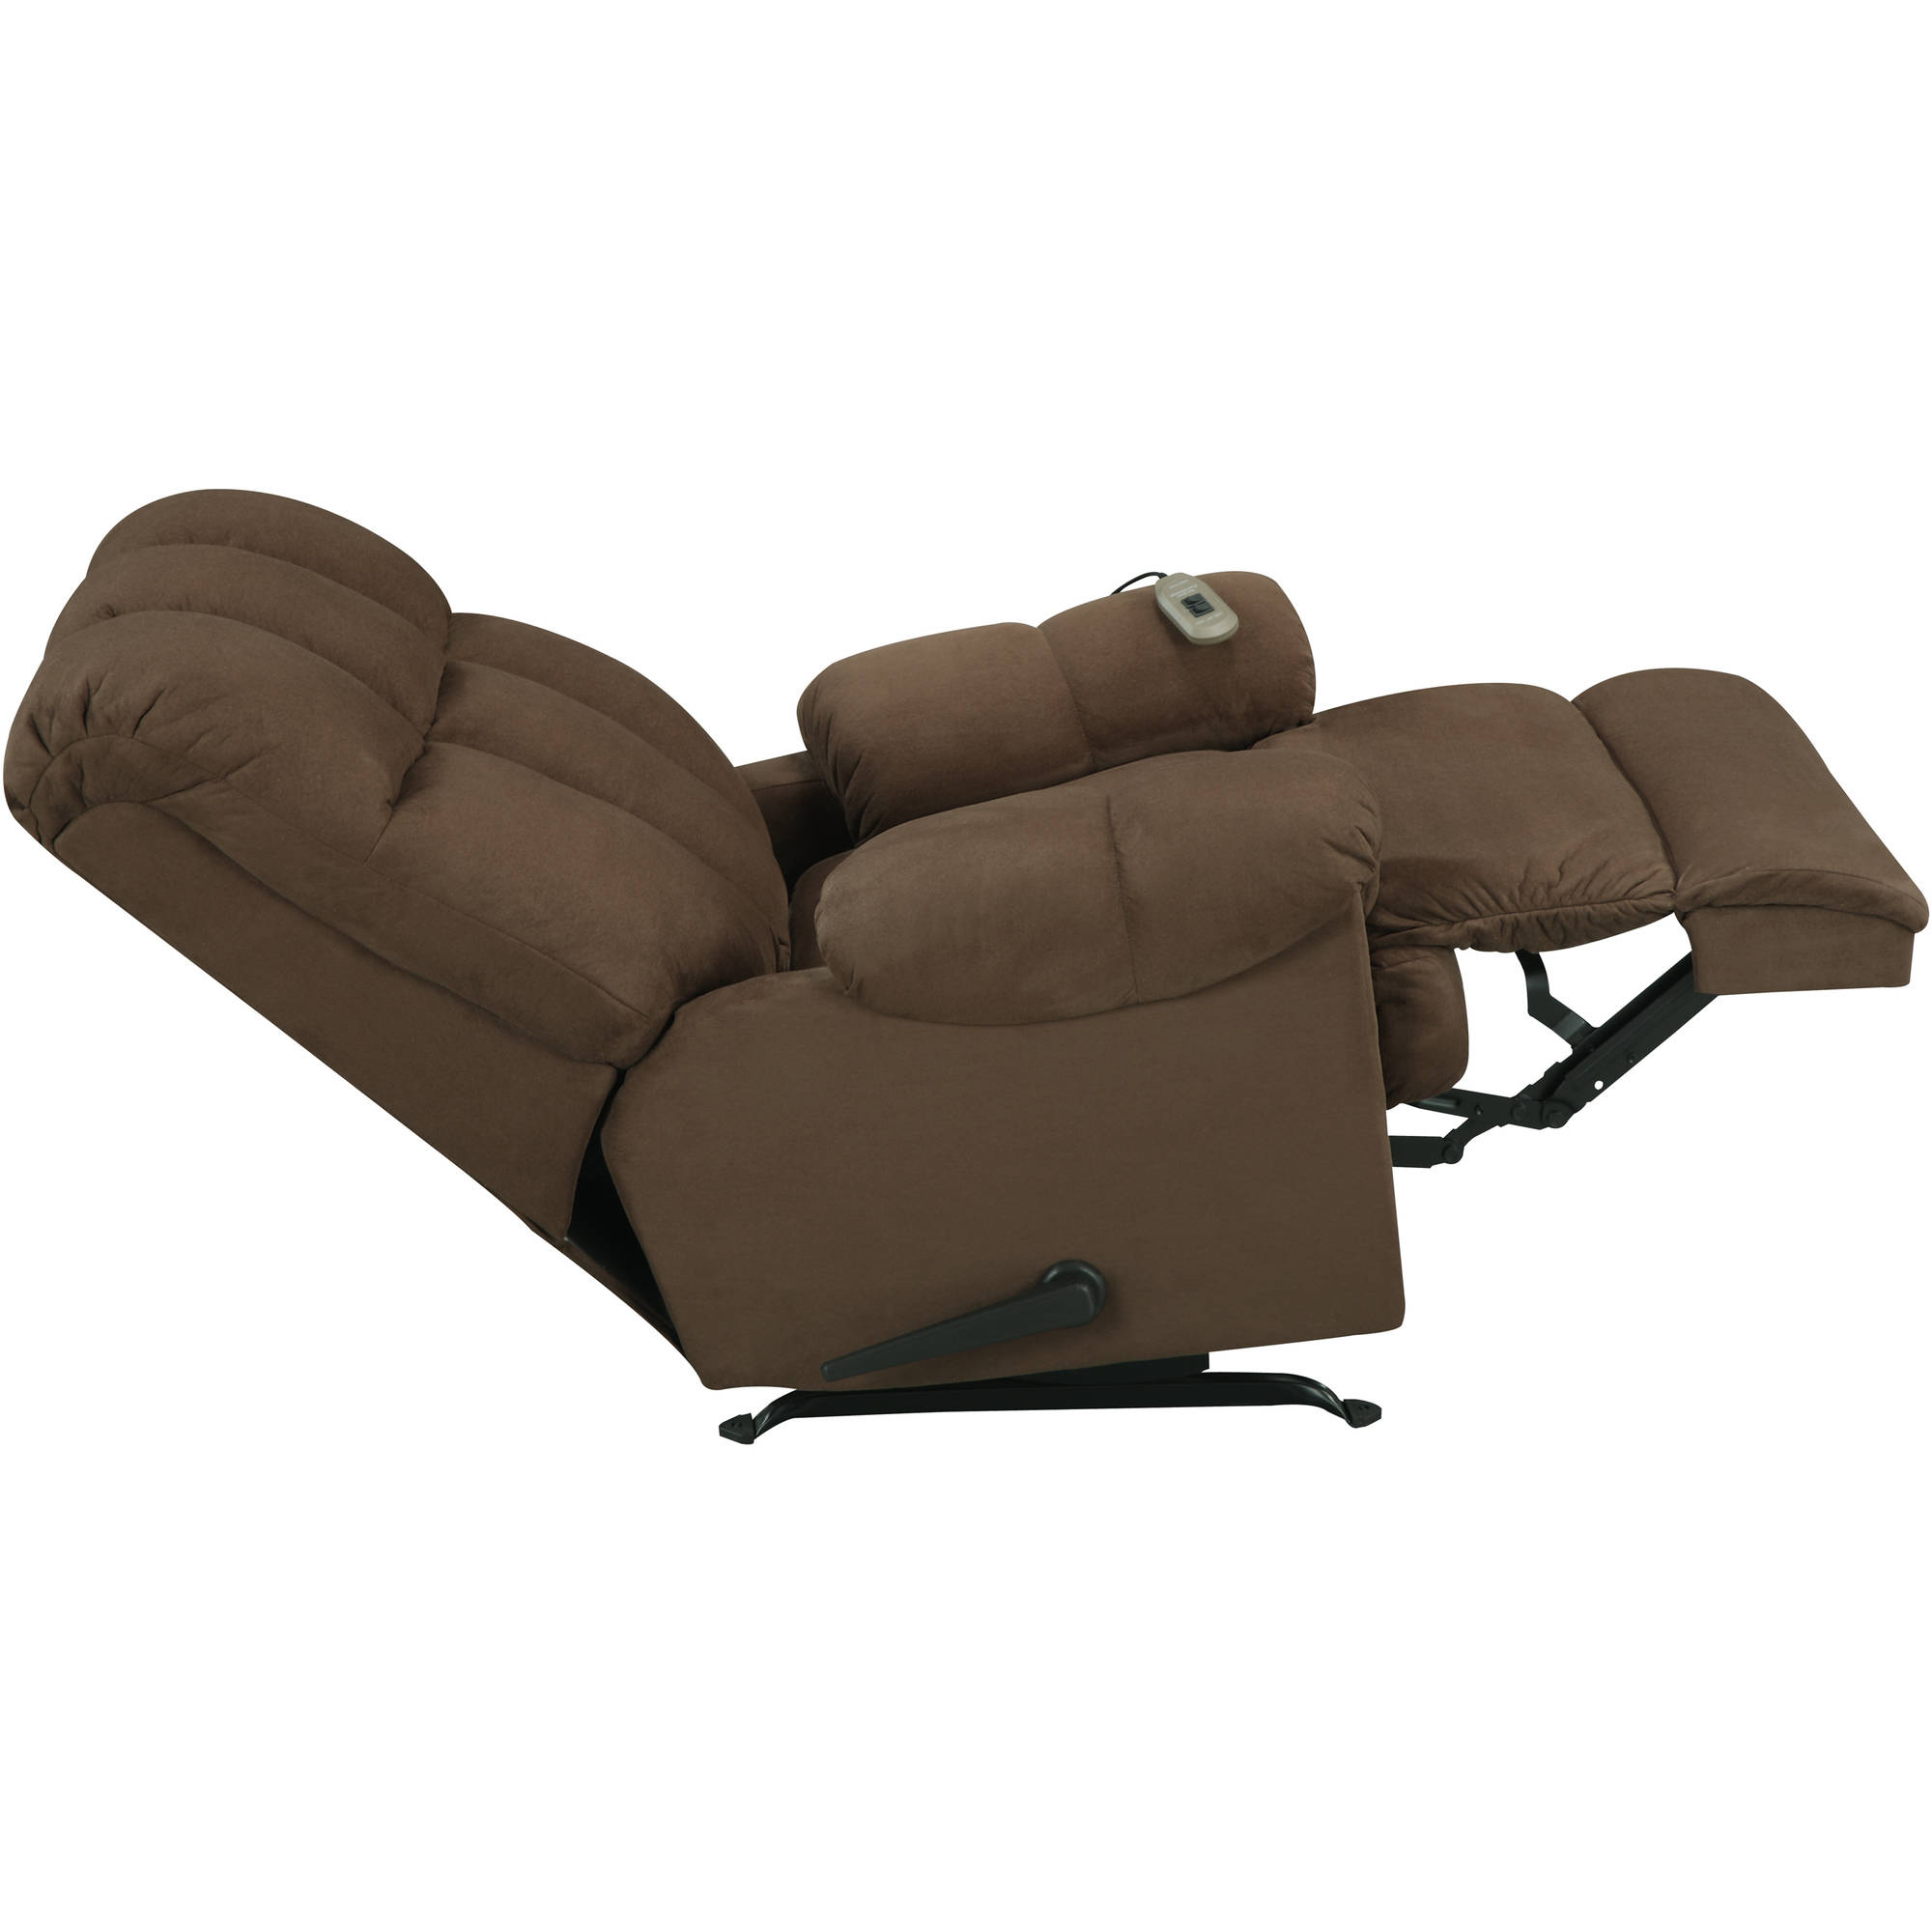 la breckenridge boy z tan collections wicker furniture natural recliner patio recliners naturaltan outdoor